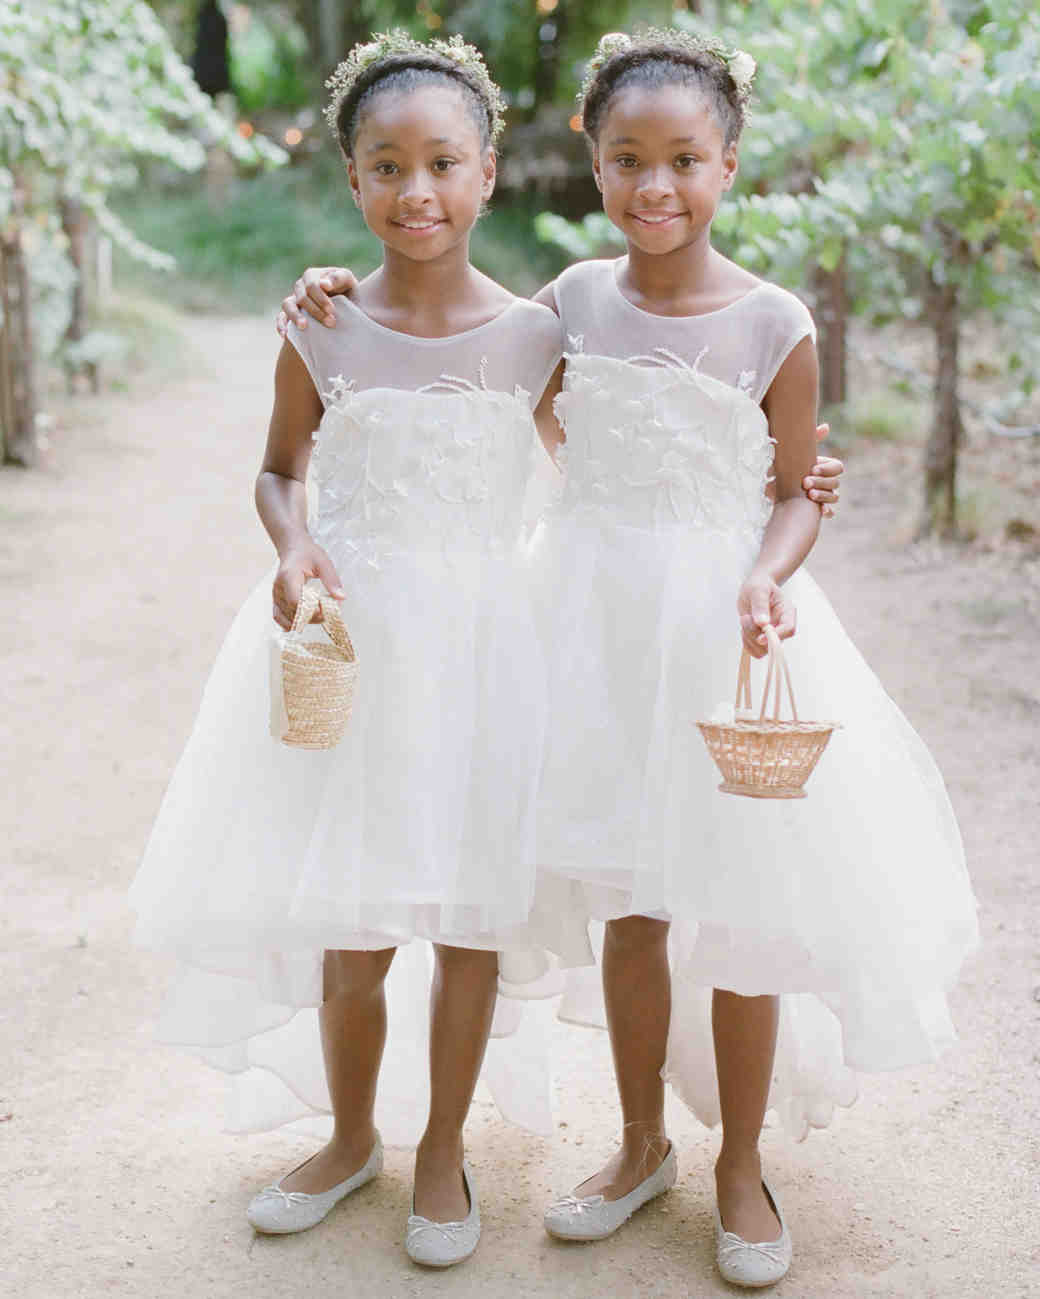 two flower girls holding small wicker baskets